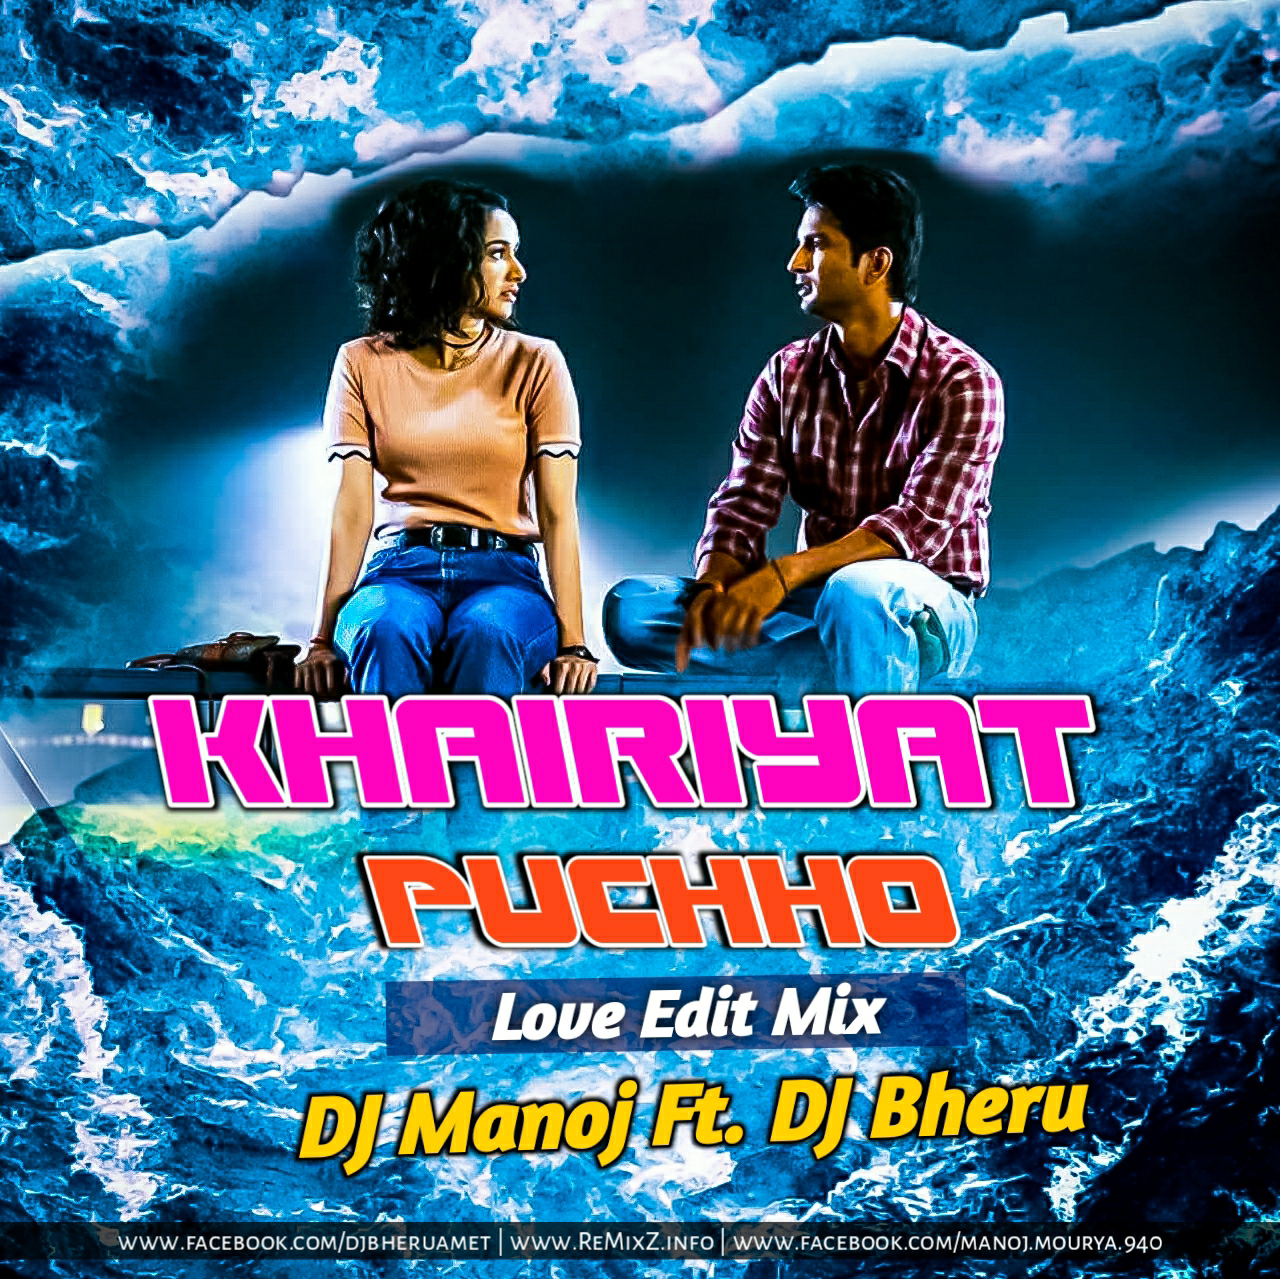 Khairiyat Puchho Love Edit Mix DJ Manoj Ft. DJ Bheru